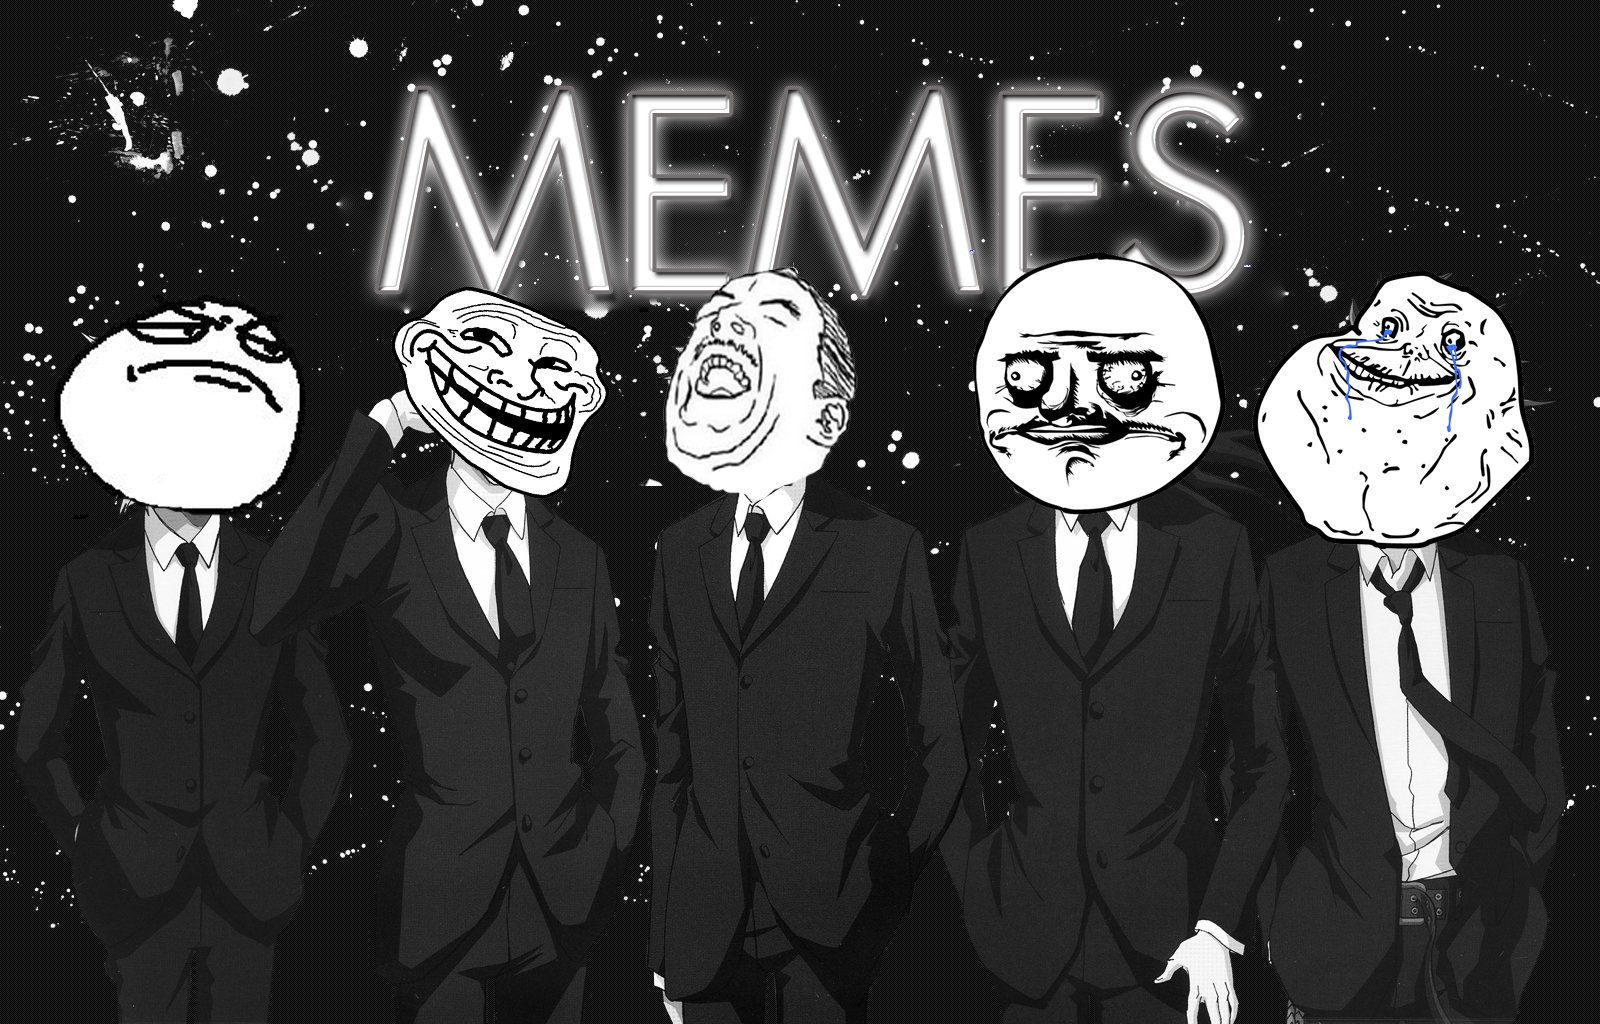 Funny Memes Wallpapers   HD Wallpapers Backgrounds of Your Choice 1600x1024